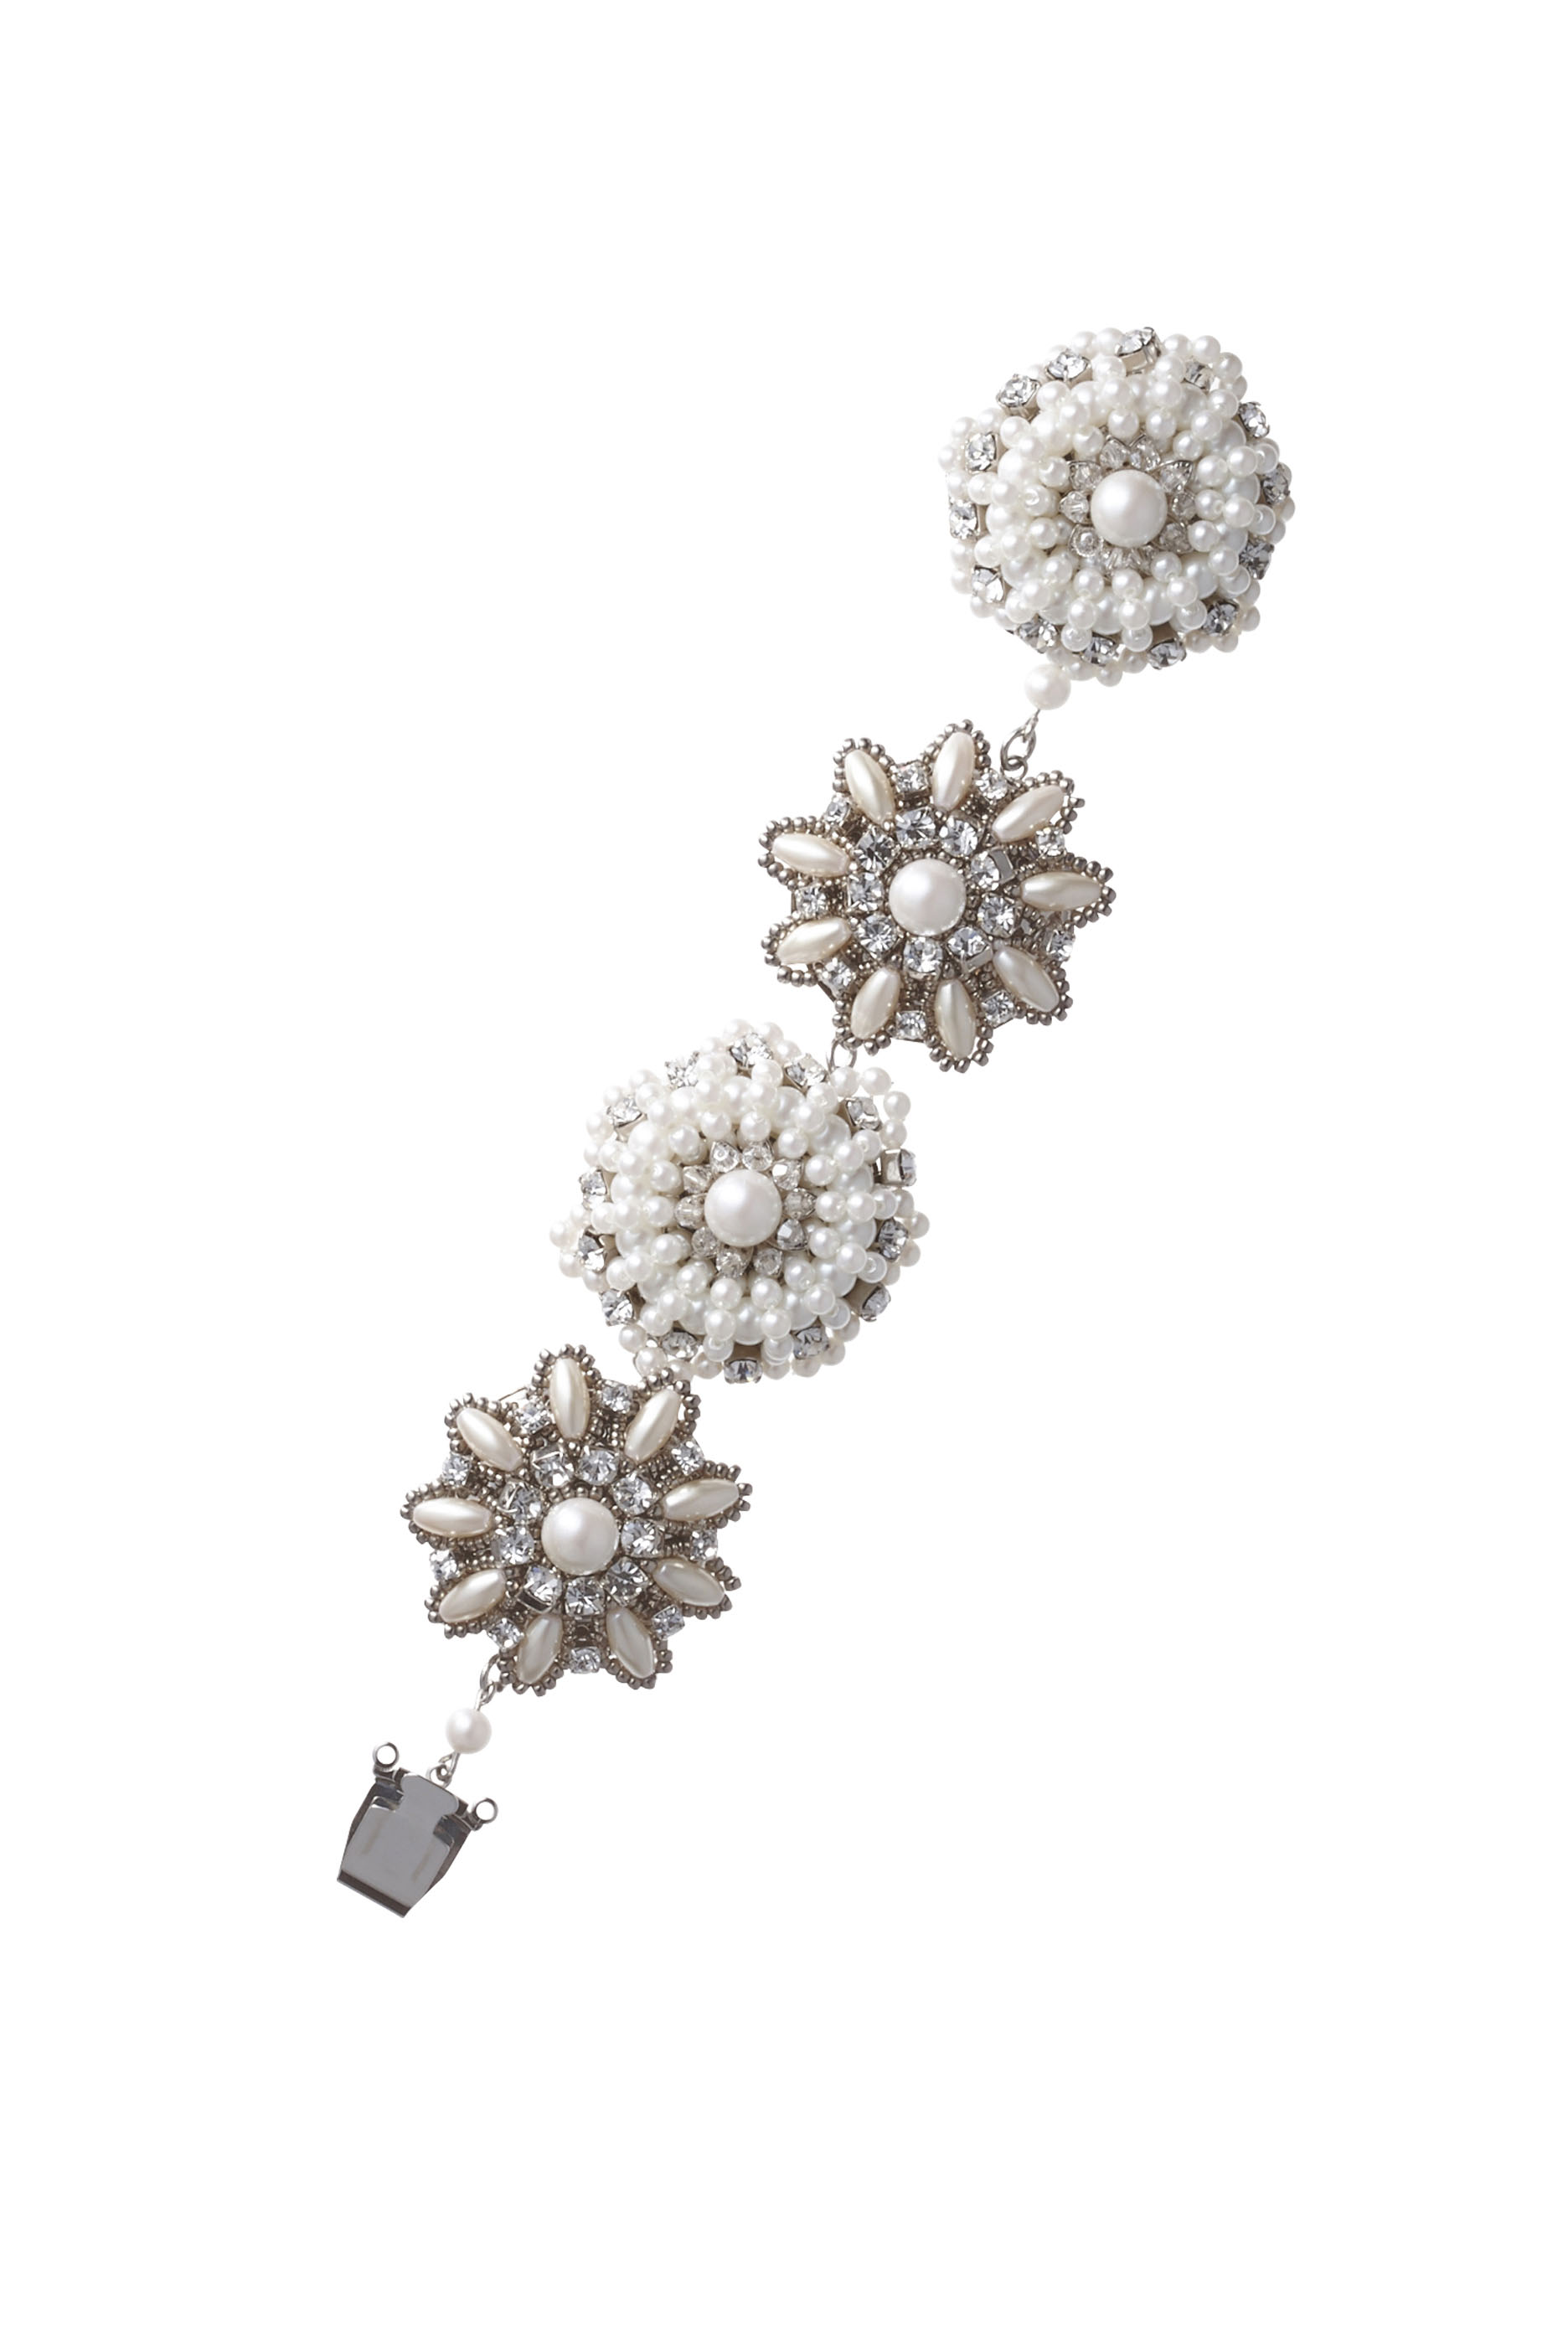 [RENTAL][Bracelet]by VANILLA CoUTURE(参考価格¥18,360)